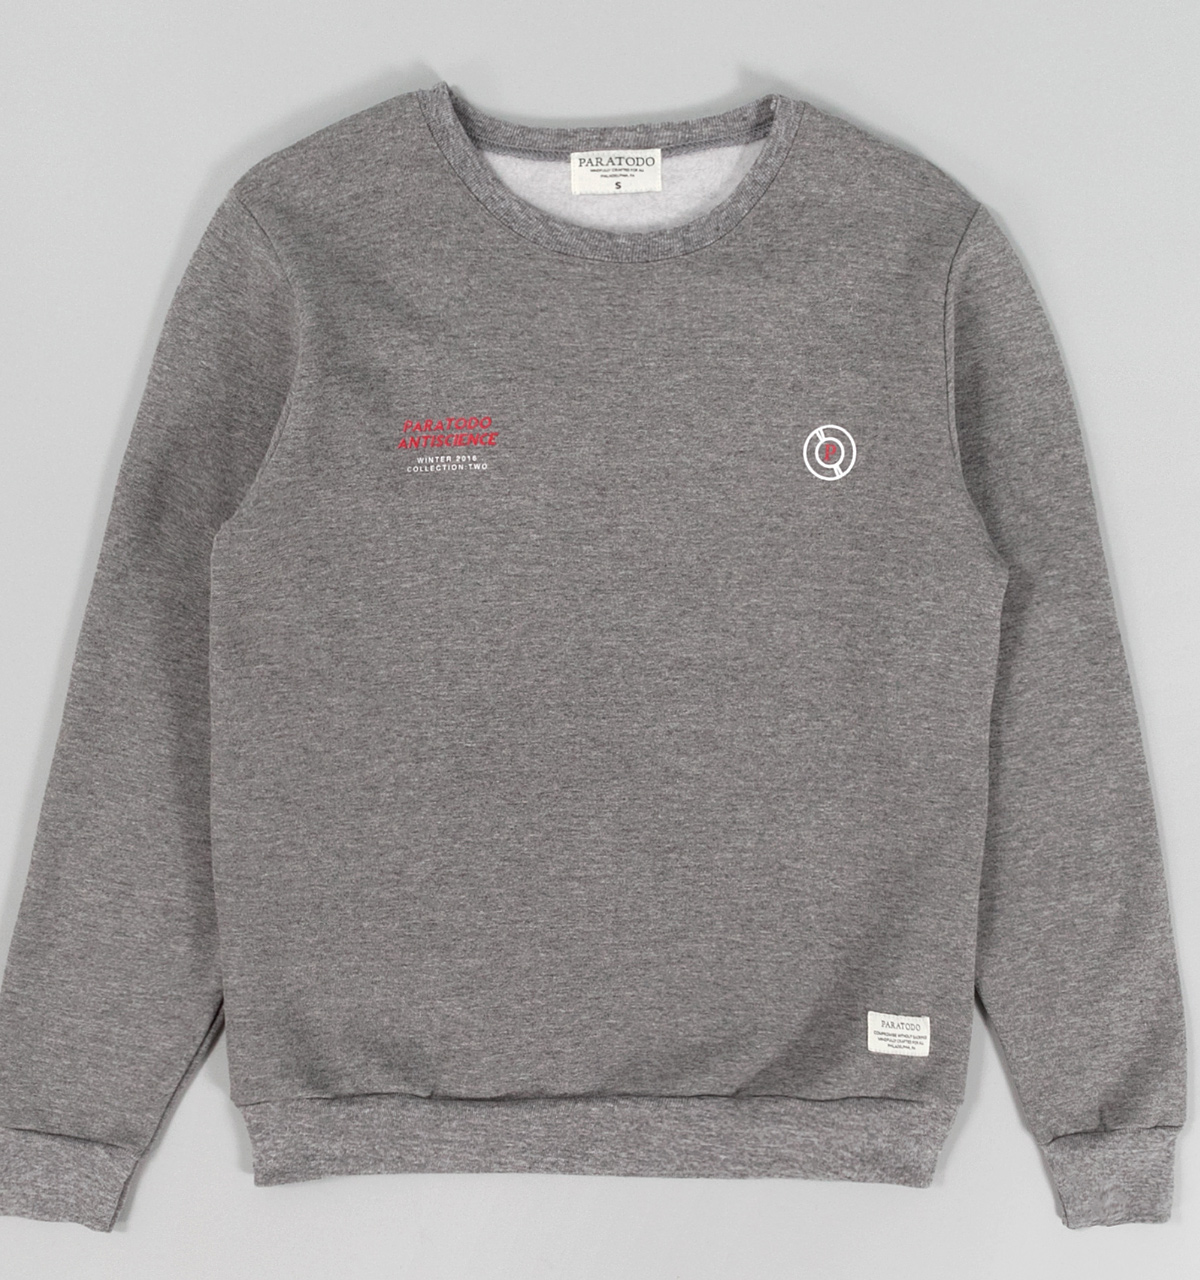 Paratodo Antiscience Sweatshirt, Grey